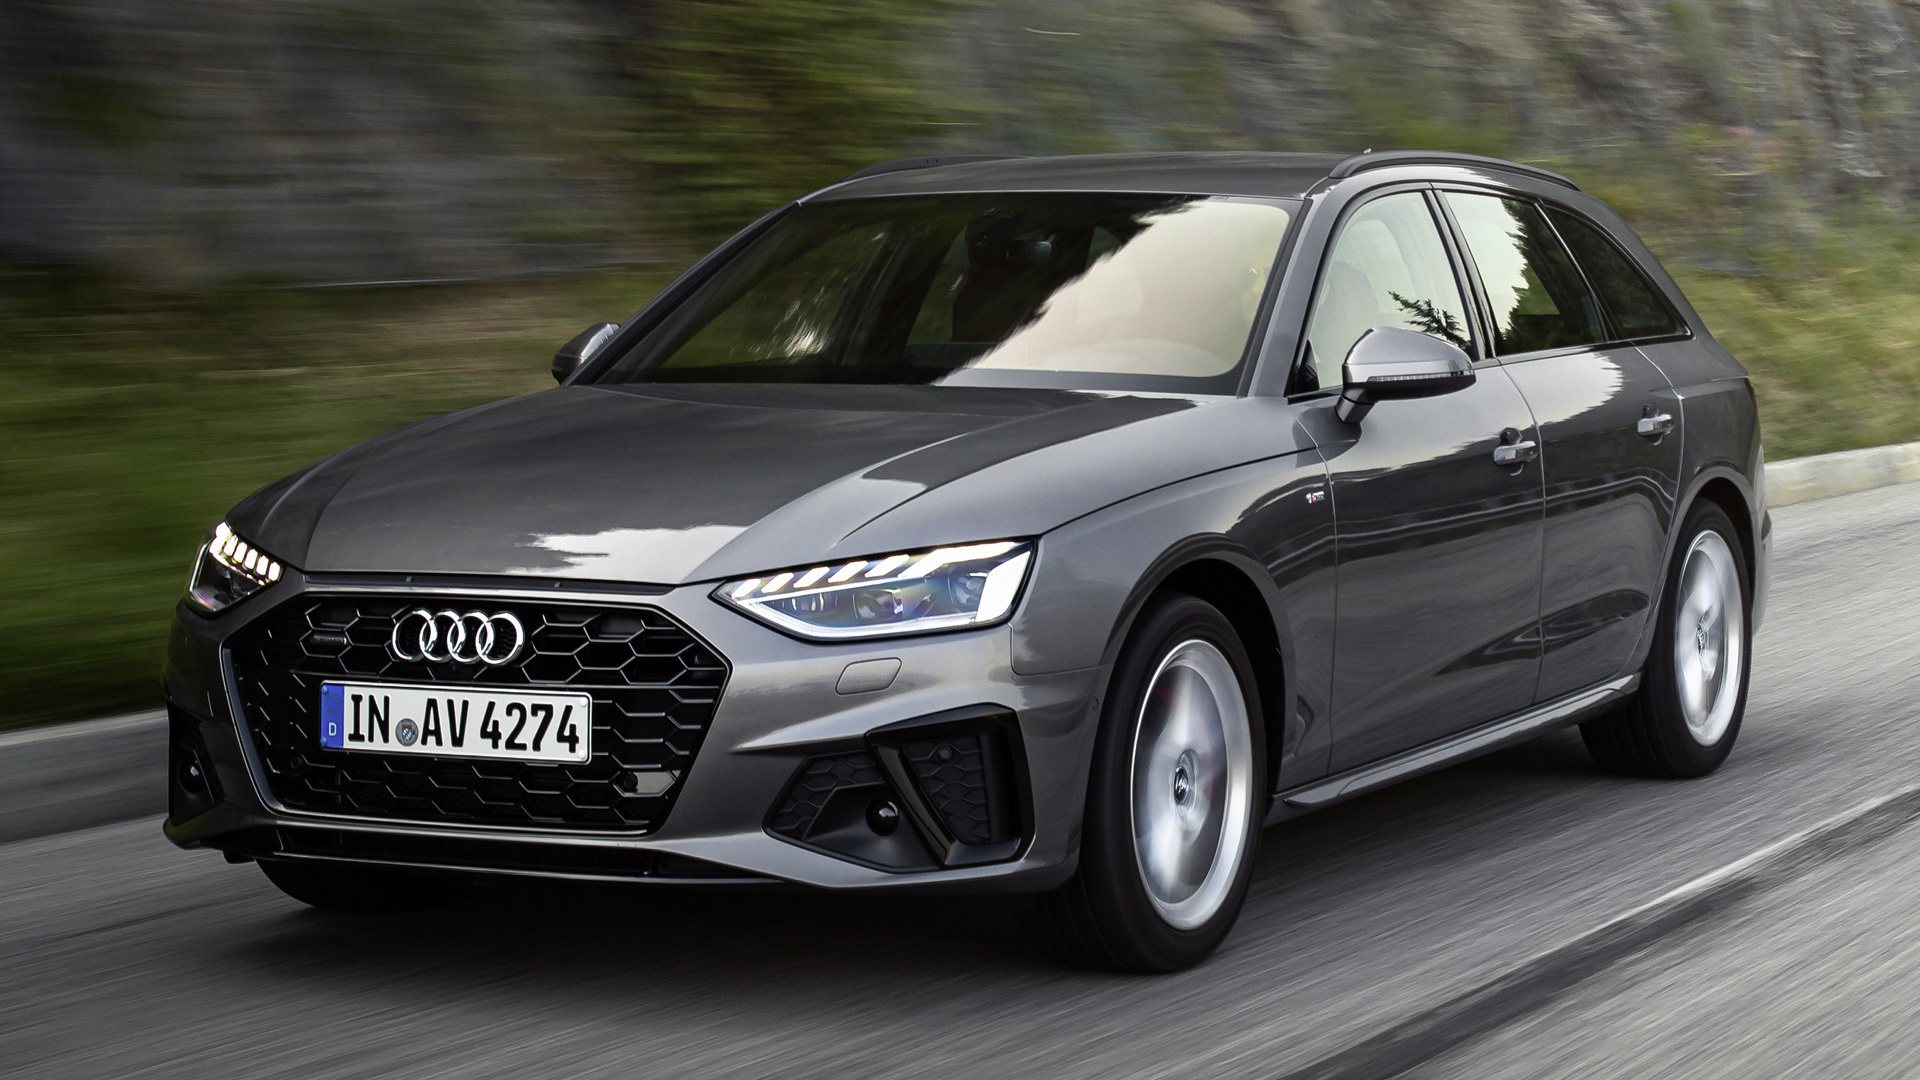 2019 Audi A4 Avant S Line Wallpapers And Hd Images Car